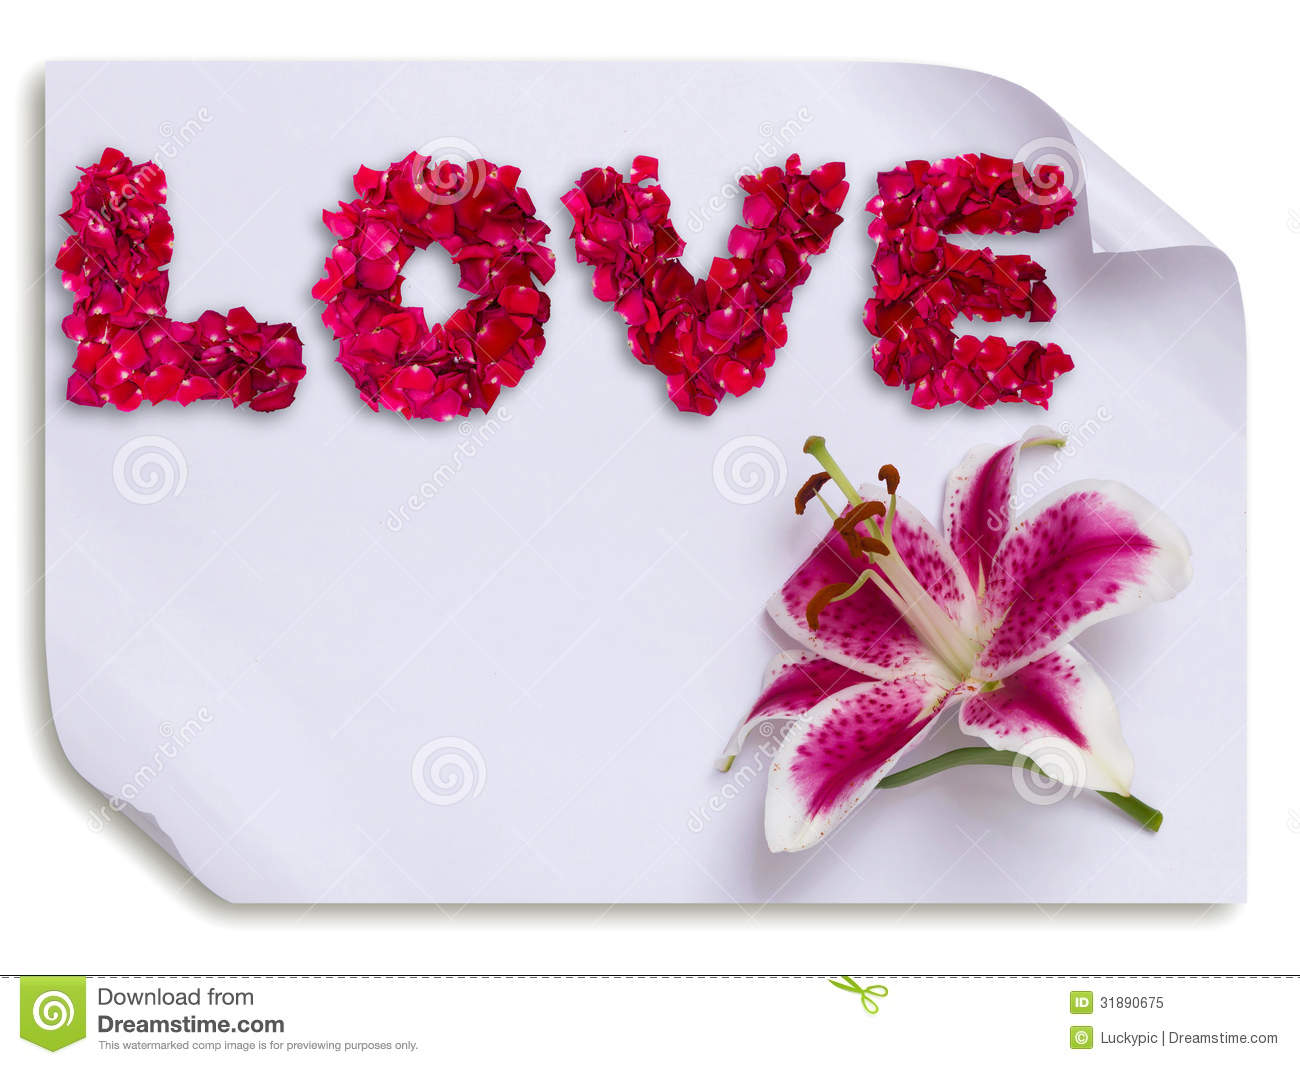 Beautiful love made from red rose petals and lily flower on paper.